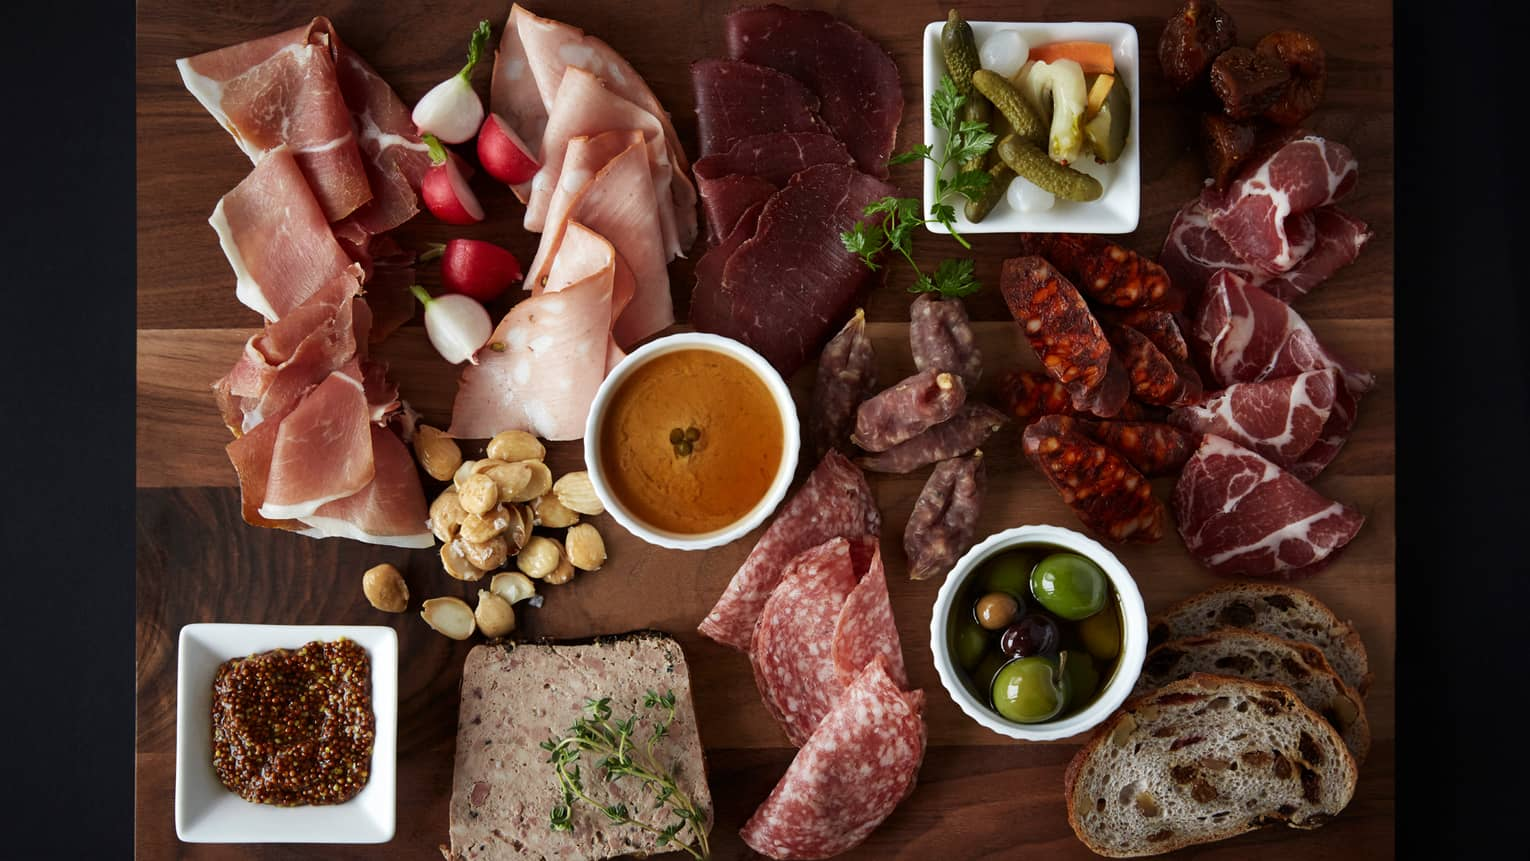 Aerial view of Bourbon Restaurant charcuterie board with cured meats, pickles, olives, pate